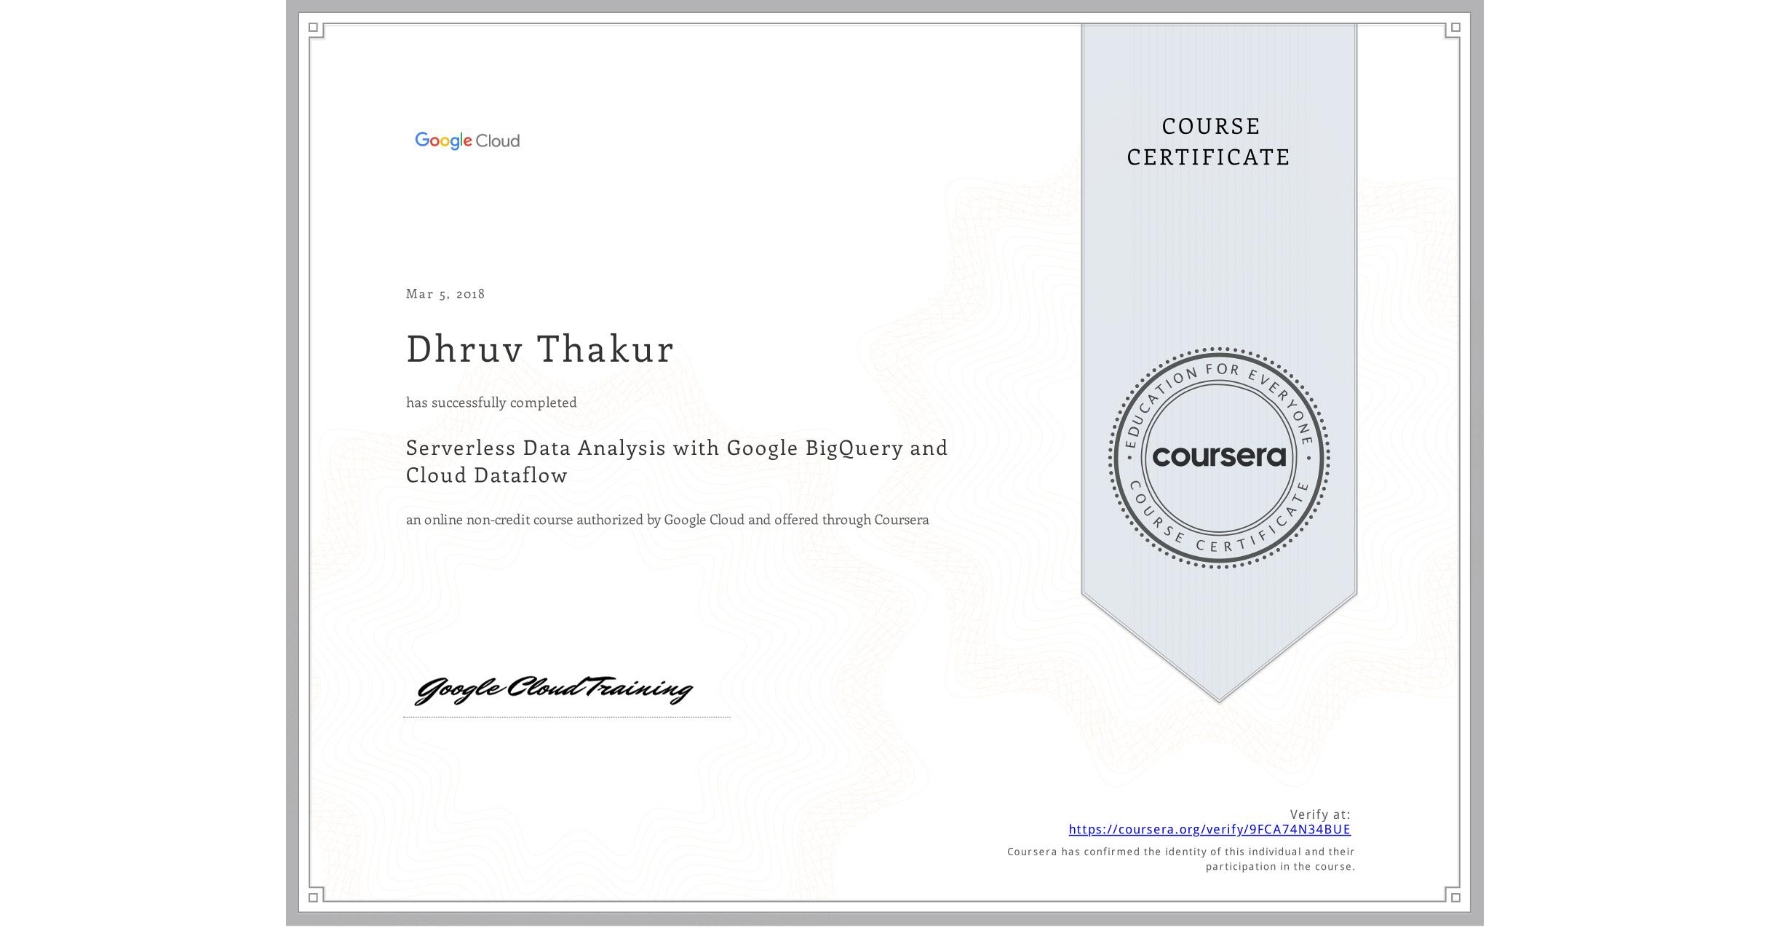 View certificate for Dhruv Thakur, Serverless Data Analysis with Google BigQuery and Cloud Dataflow, an online non-credit course authorized by Google Cloud and offered through Coursera